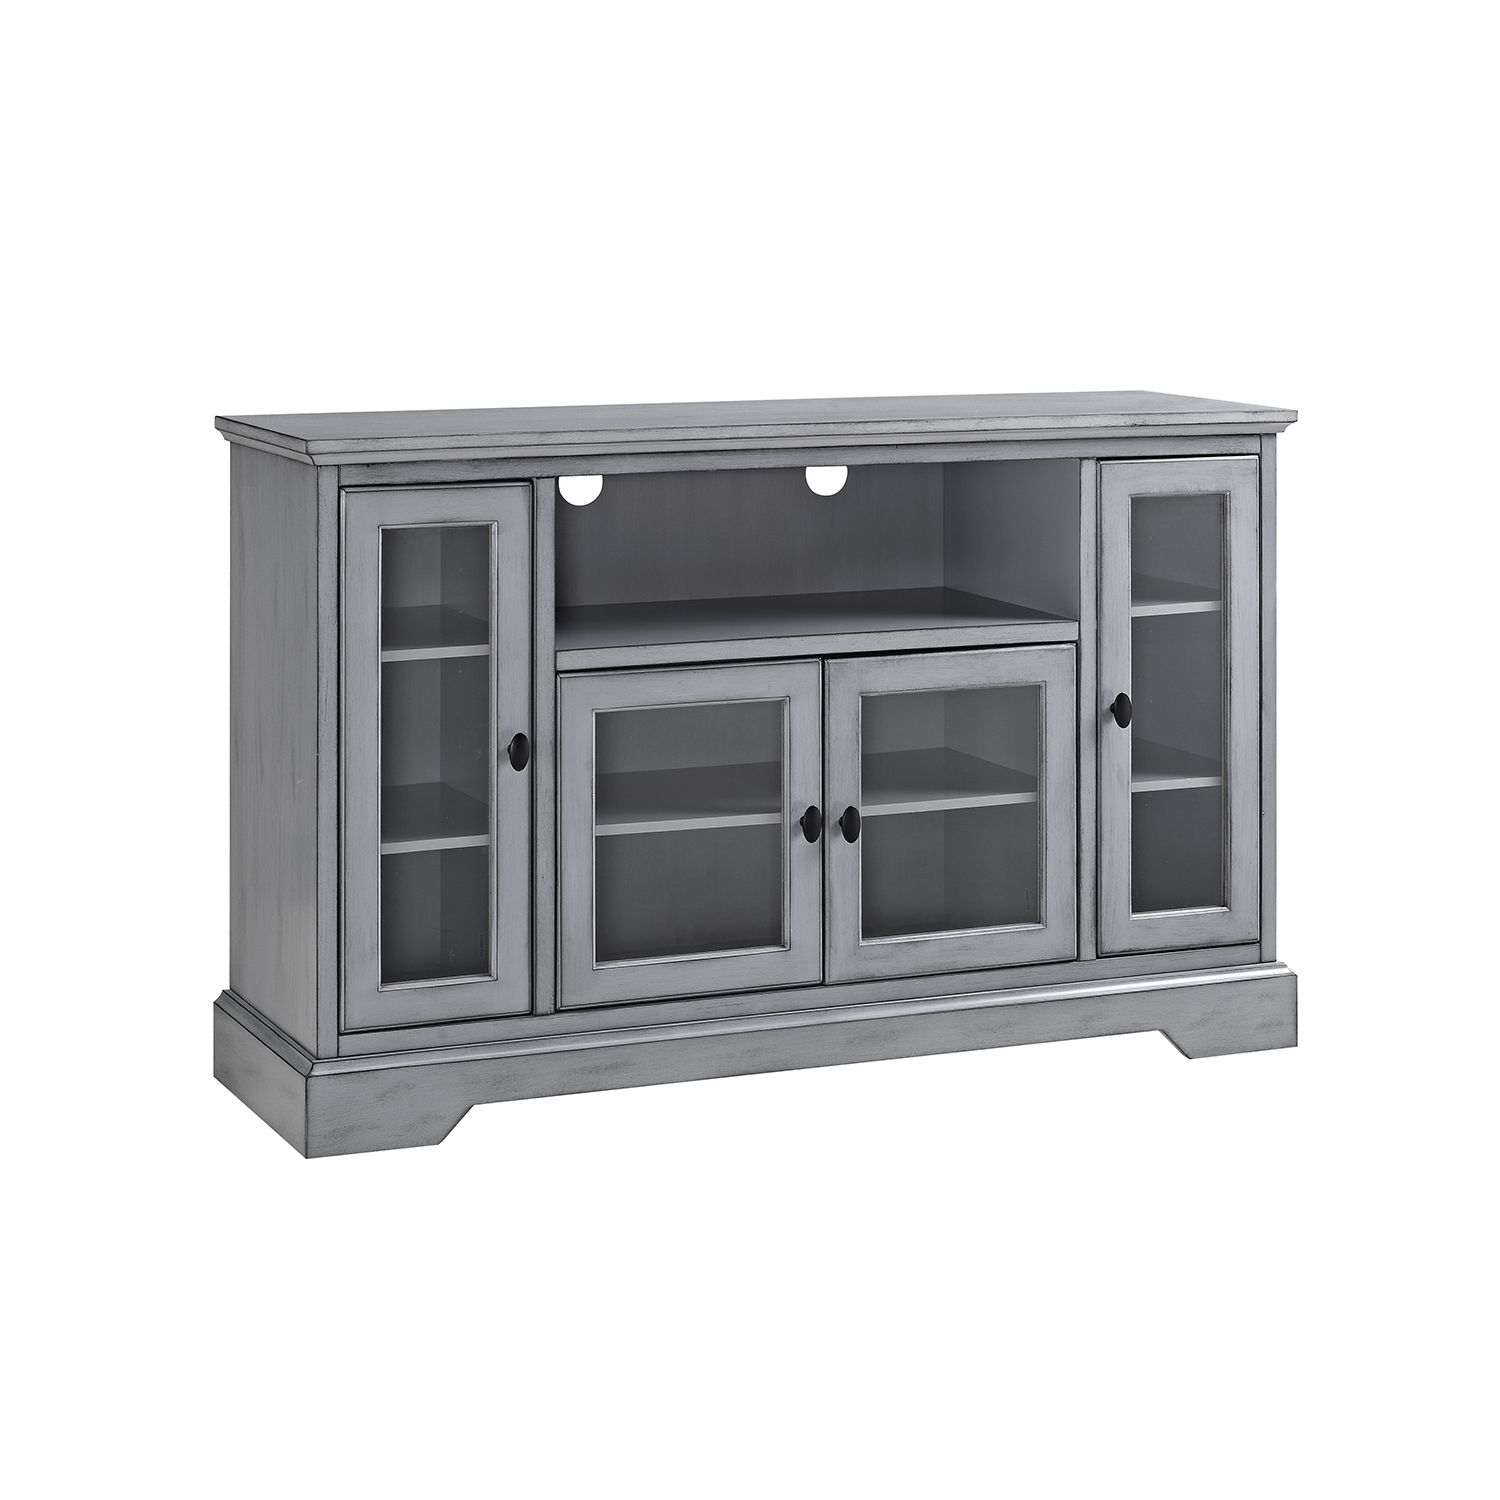 Walker Edison Furniture Co 52 Inch Wood Highboy Tv Media Stand Storage Console Antique Grey In 2019 Furniture Design Tv Stand With Storage Tv Media Sta